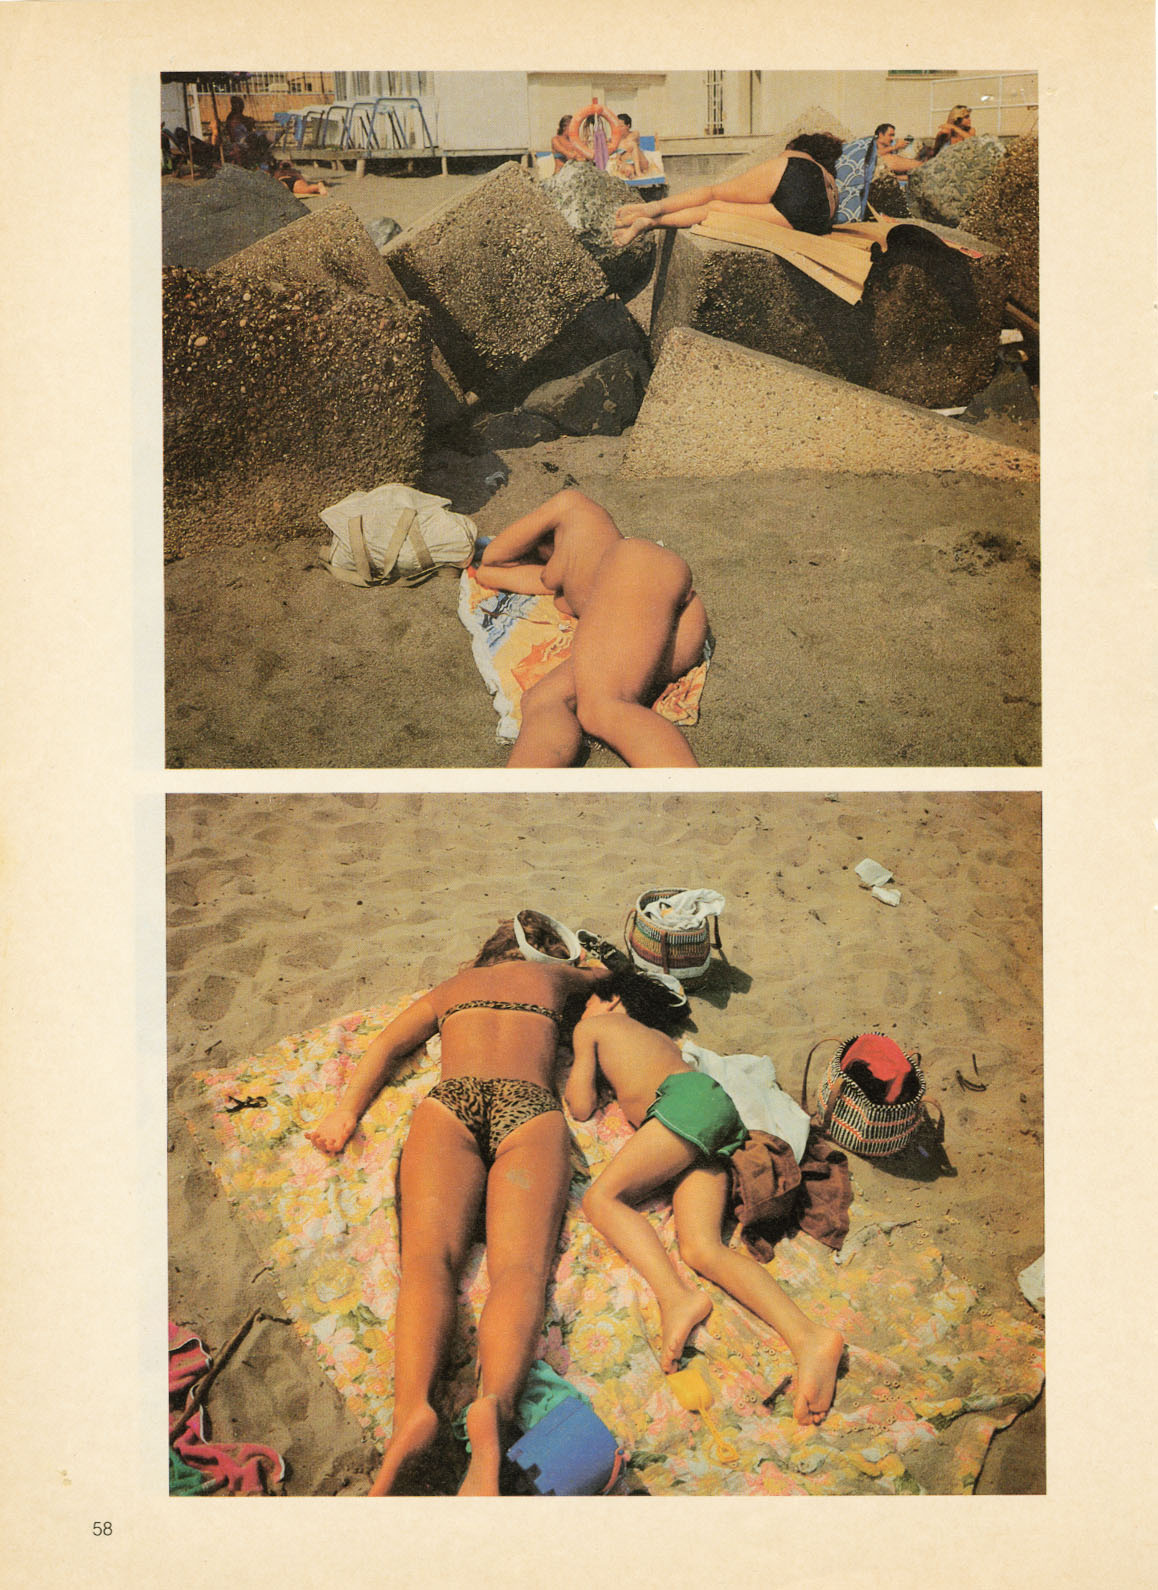 American Photographer - Article about Charles work - 1984 005.jpg